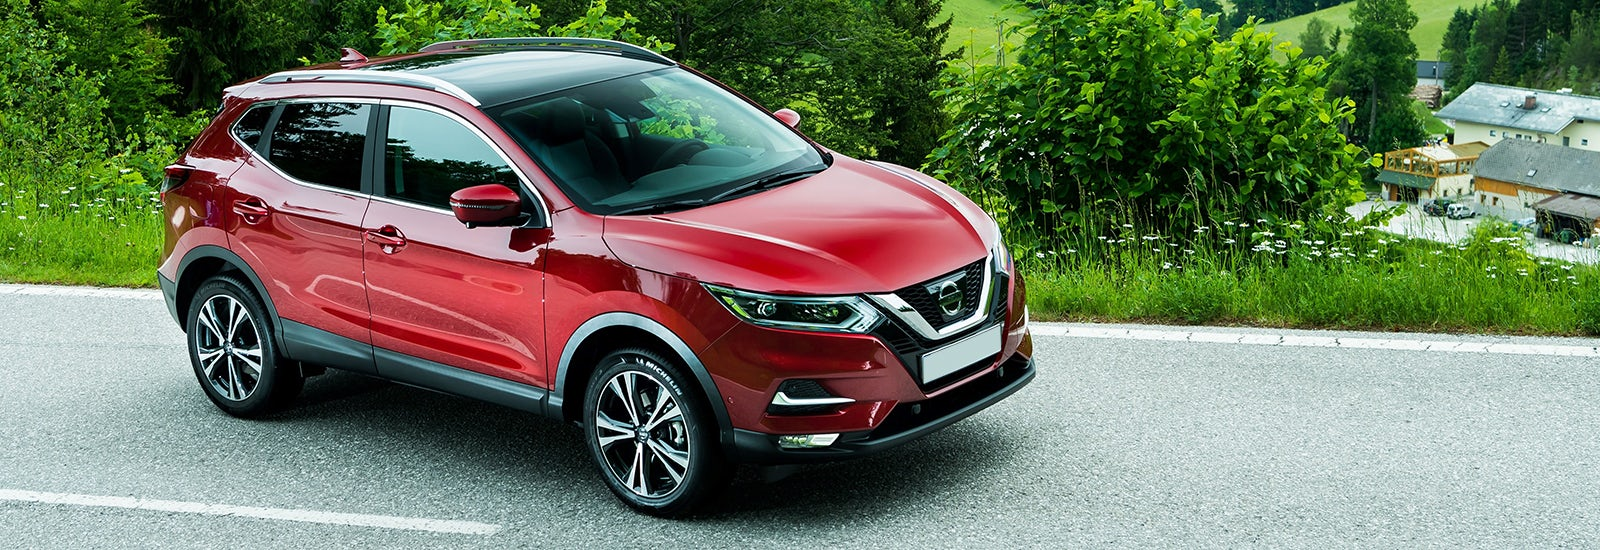 2017 nissan qashqai facelift price specs release date carwow. Black Bedroom Furniture Sets. Home Design Ideas